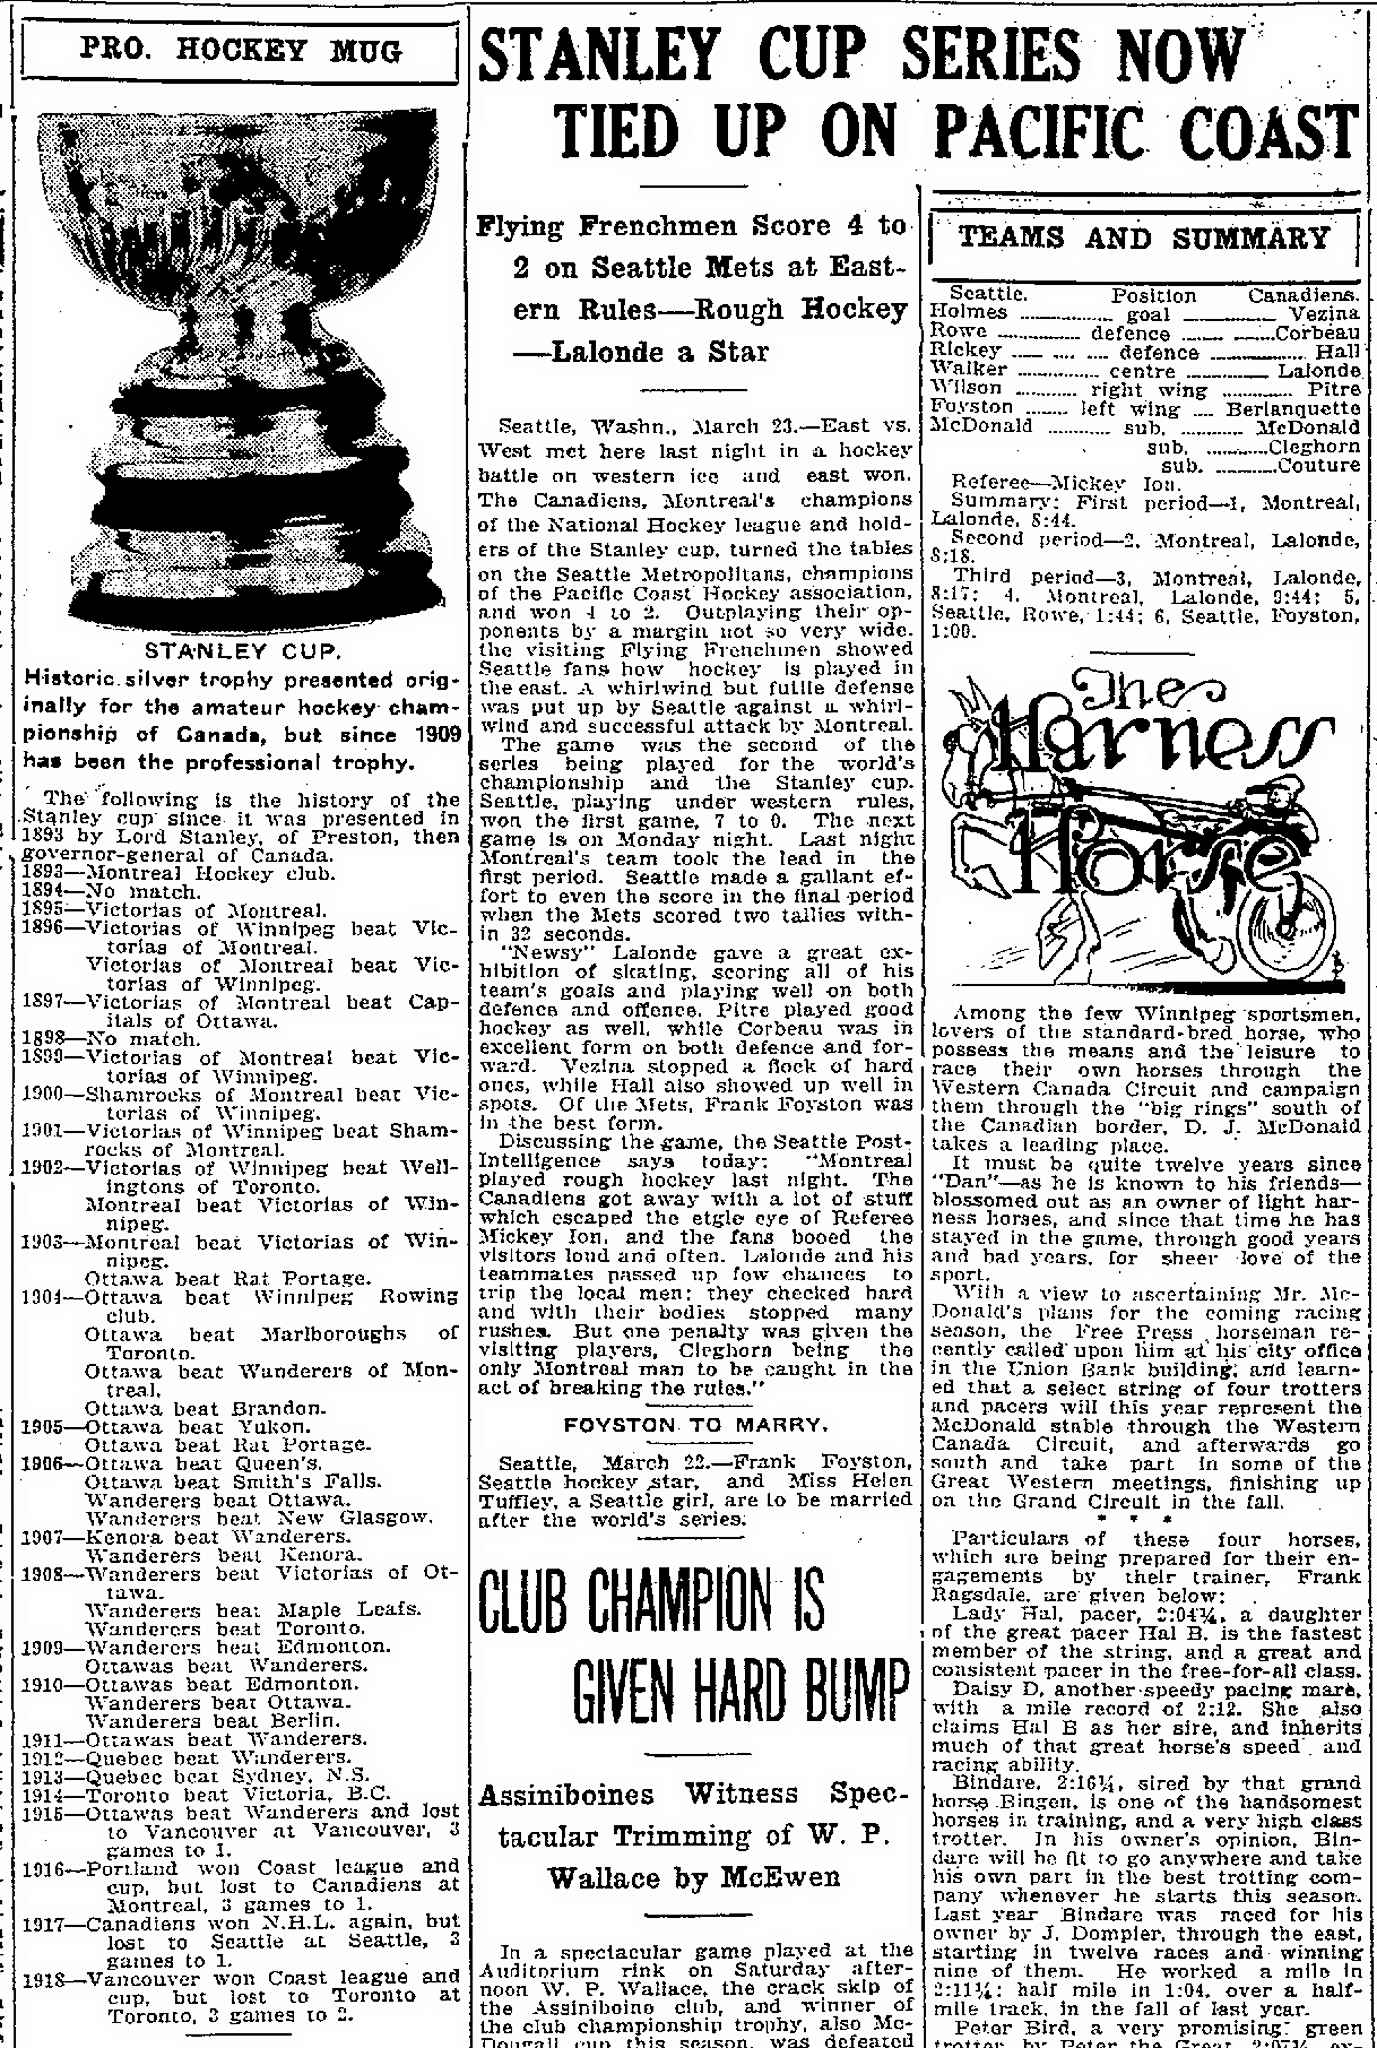 An article published in the Manitoba Free Press on March 24, 1919